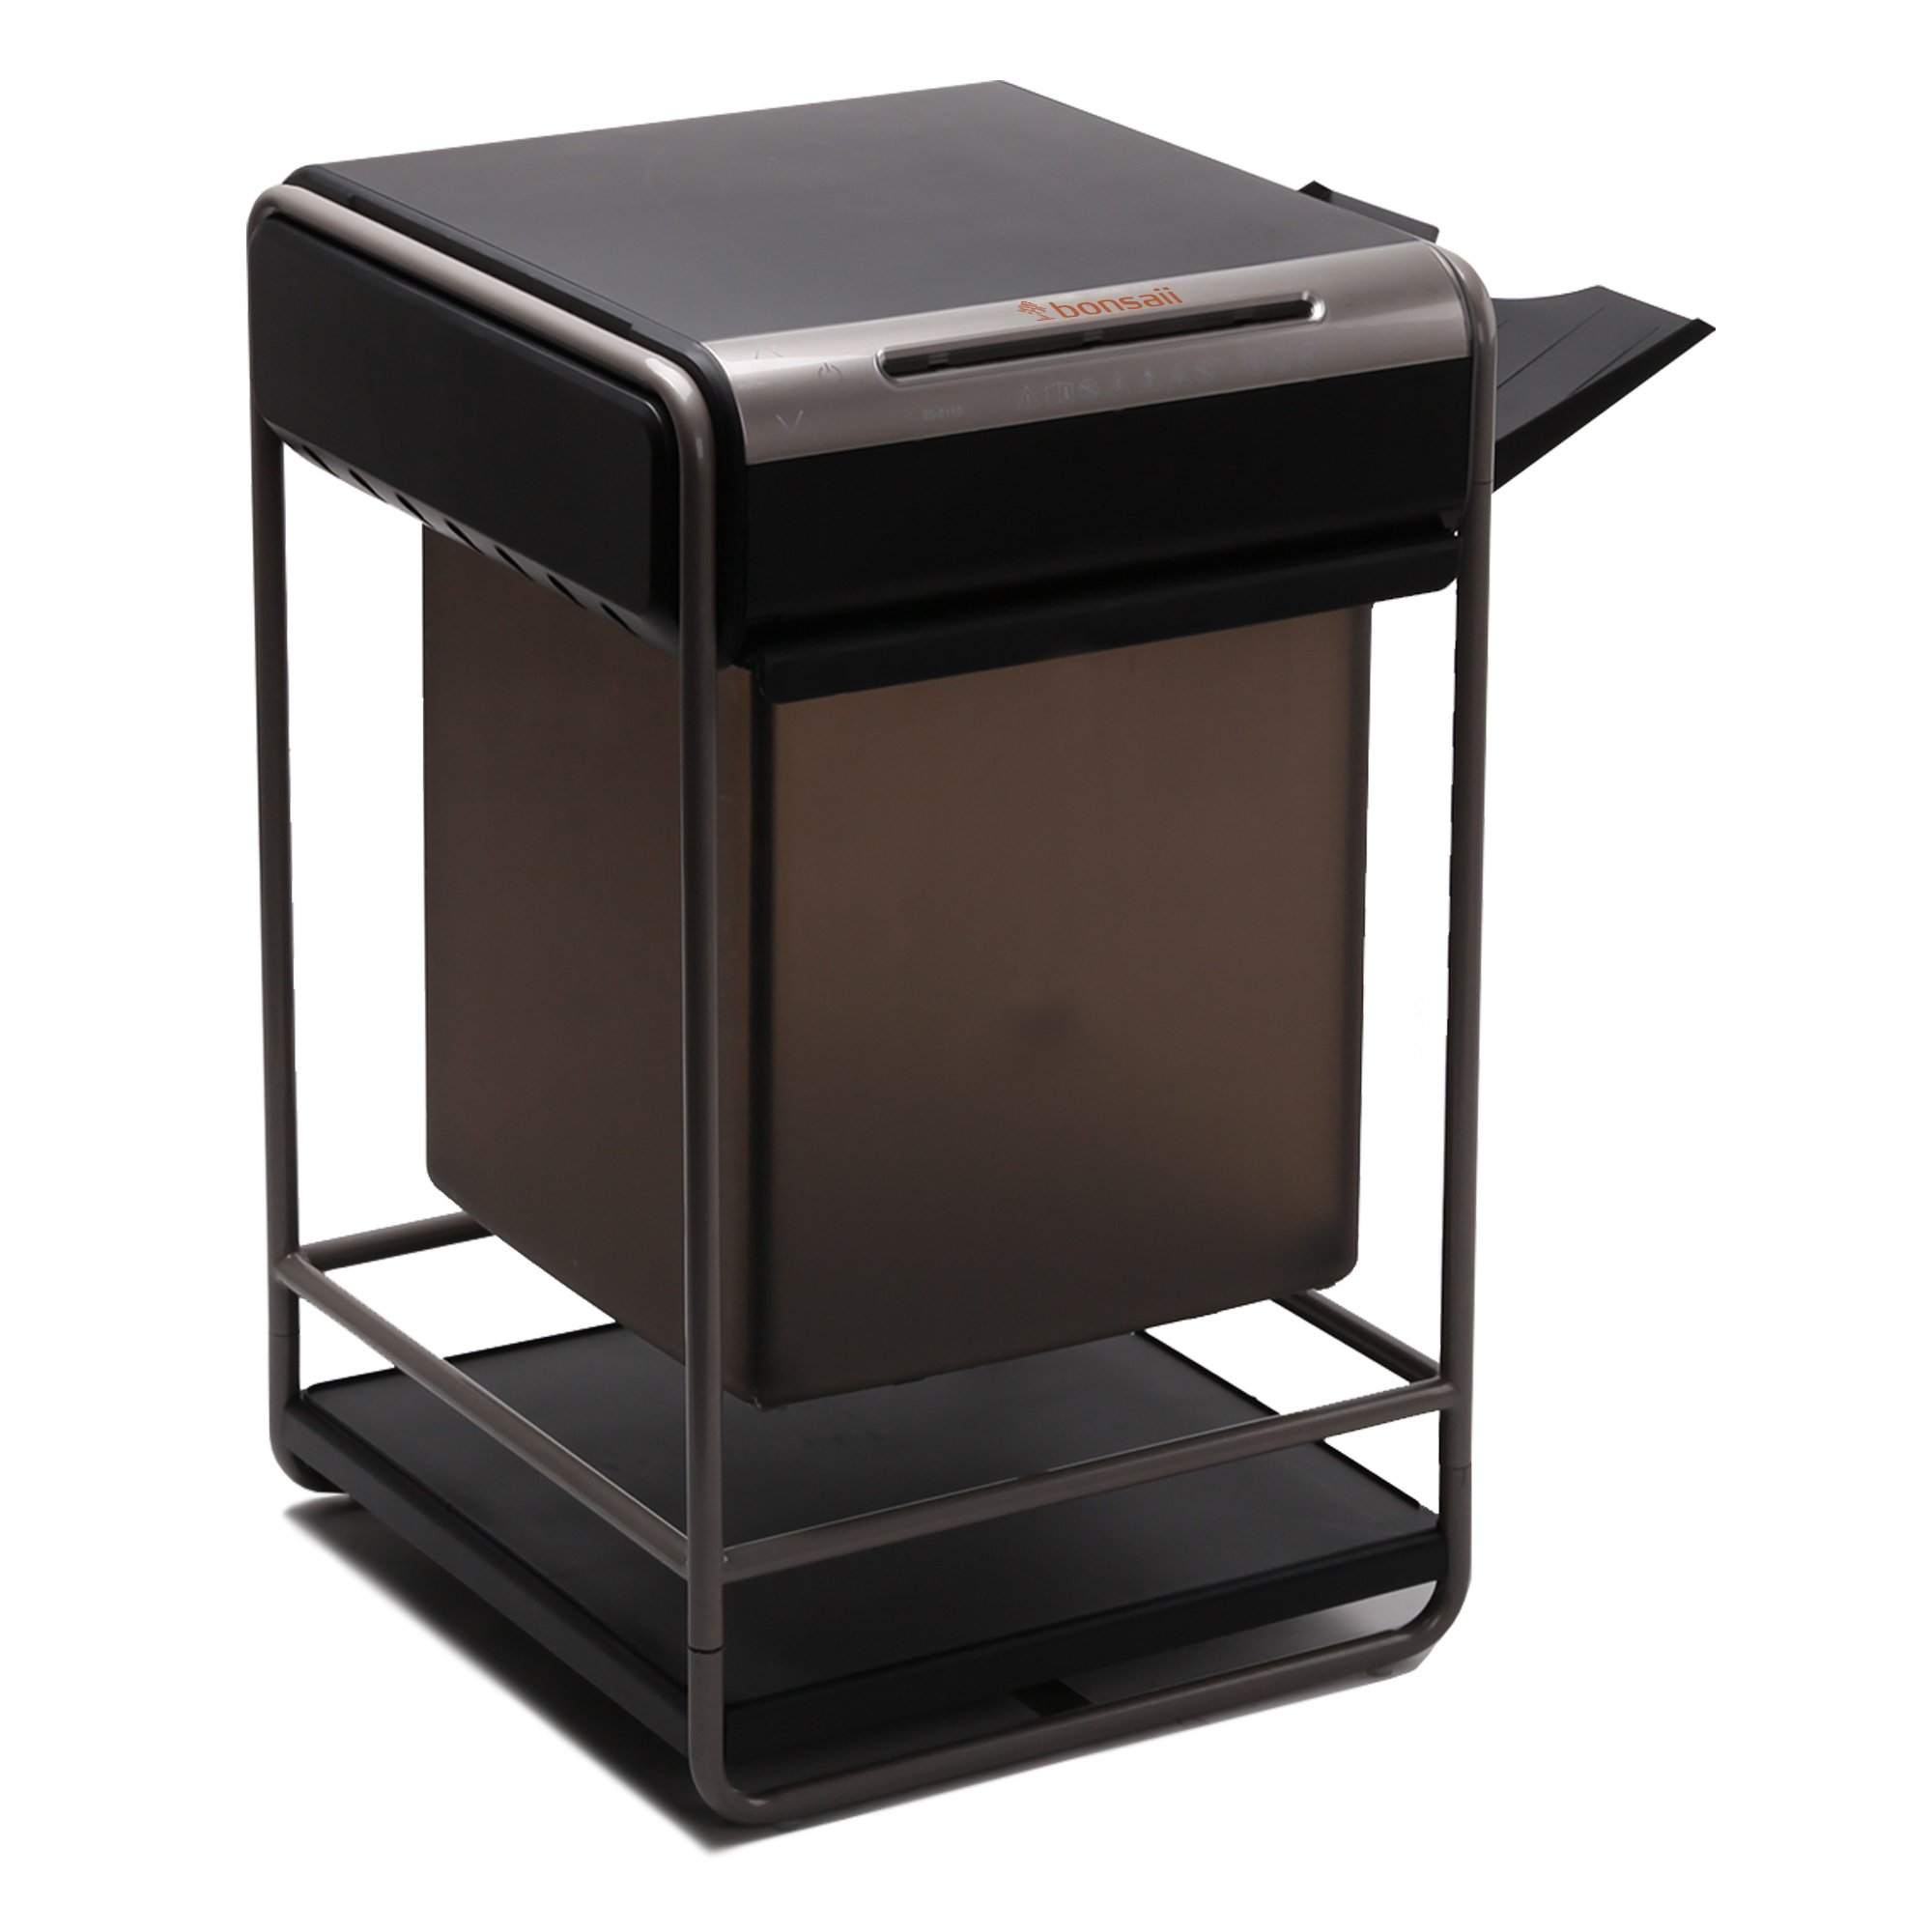 Bonsaii PrinterBro C146-B Desktop-Style Cross-Cut 10-Sheet Paper/Clip/Staple Shredder, 3-in-1 Combo Unit, 11.1 Gallon Draw-out Wastebasket Capacity, Super Space Saving by Bonsaii